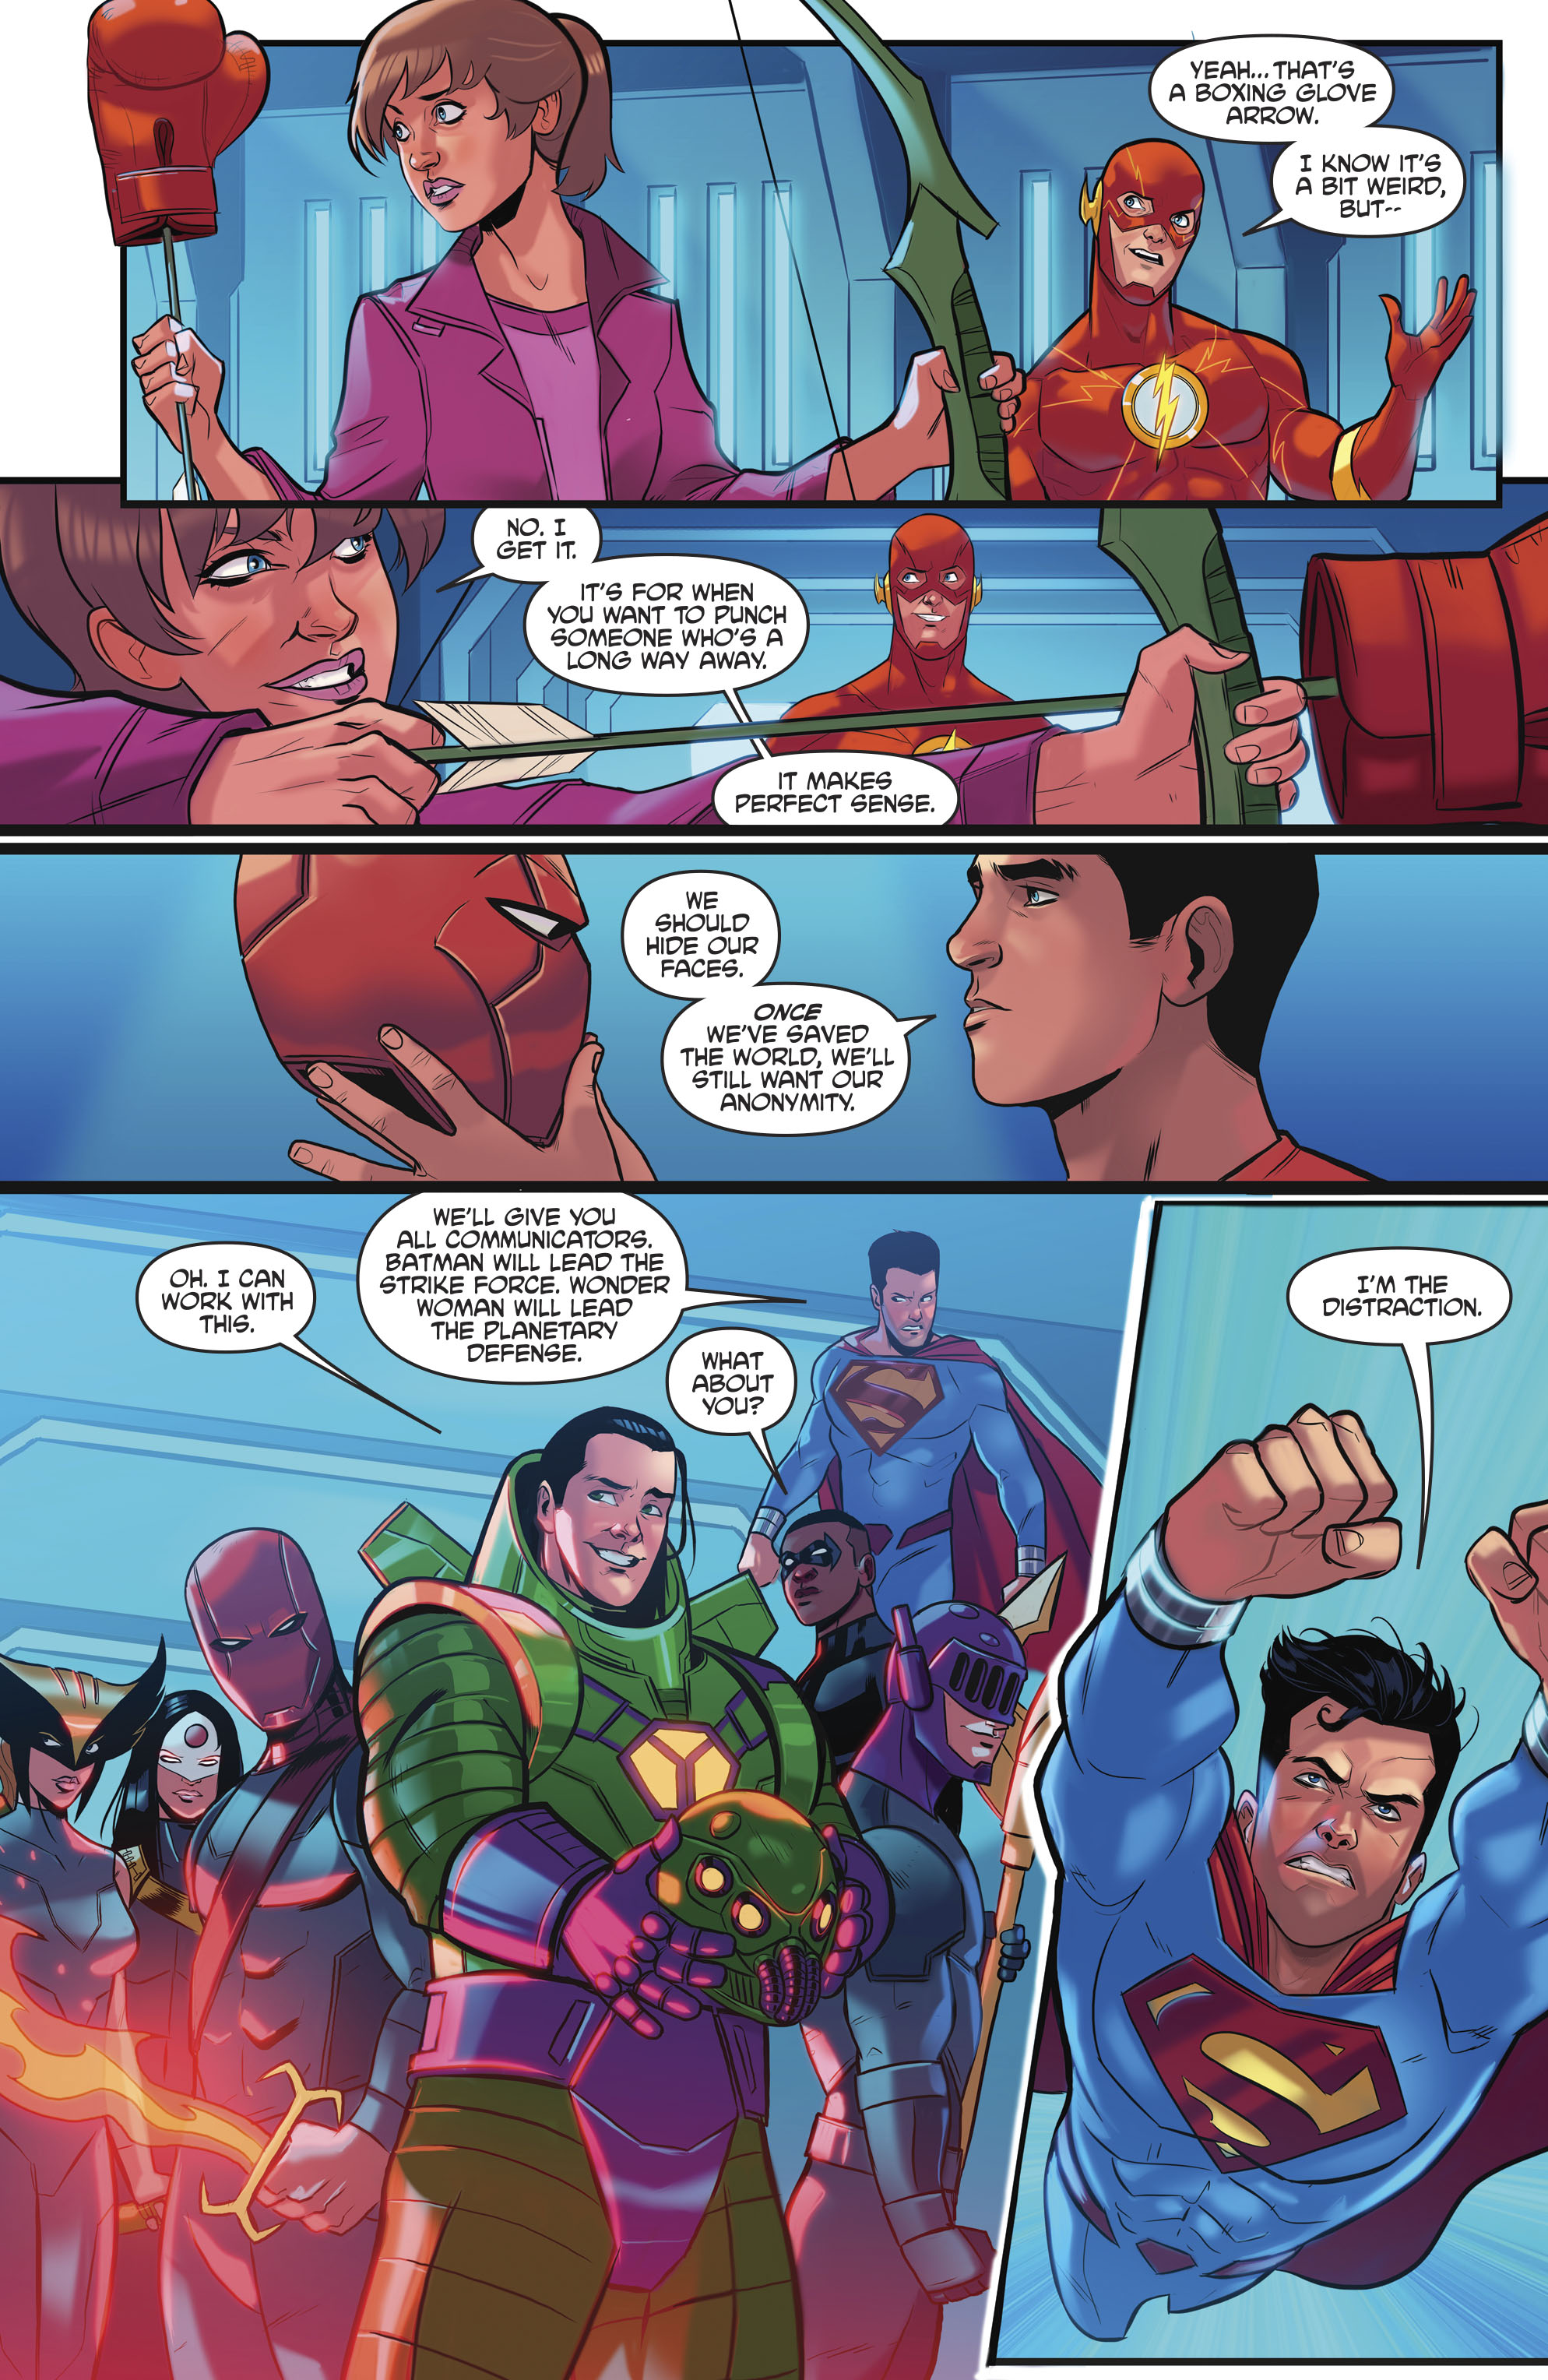 Read online Justice League/Mighty Morphin' Power Rangers comic -  Issue #4 - 17